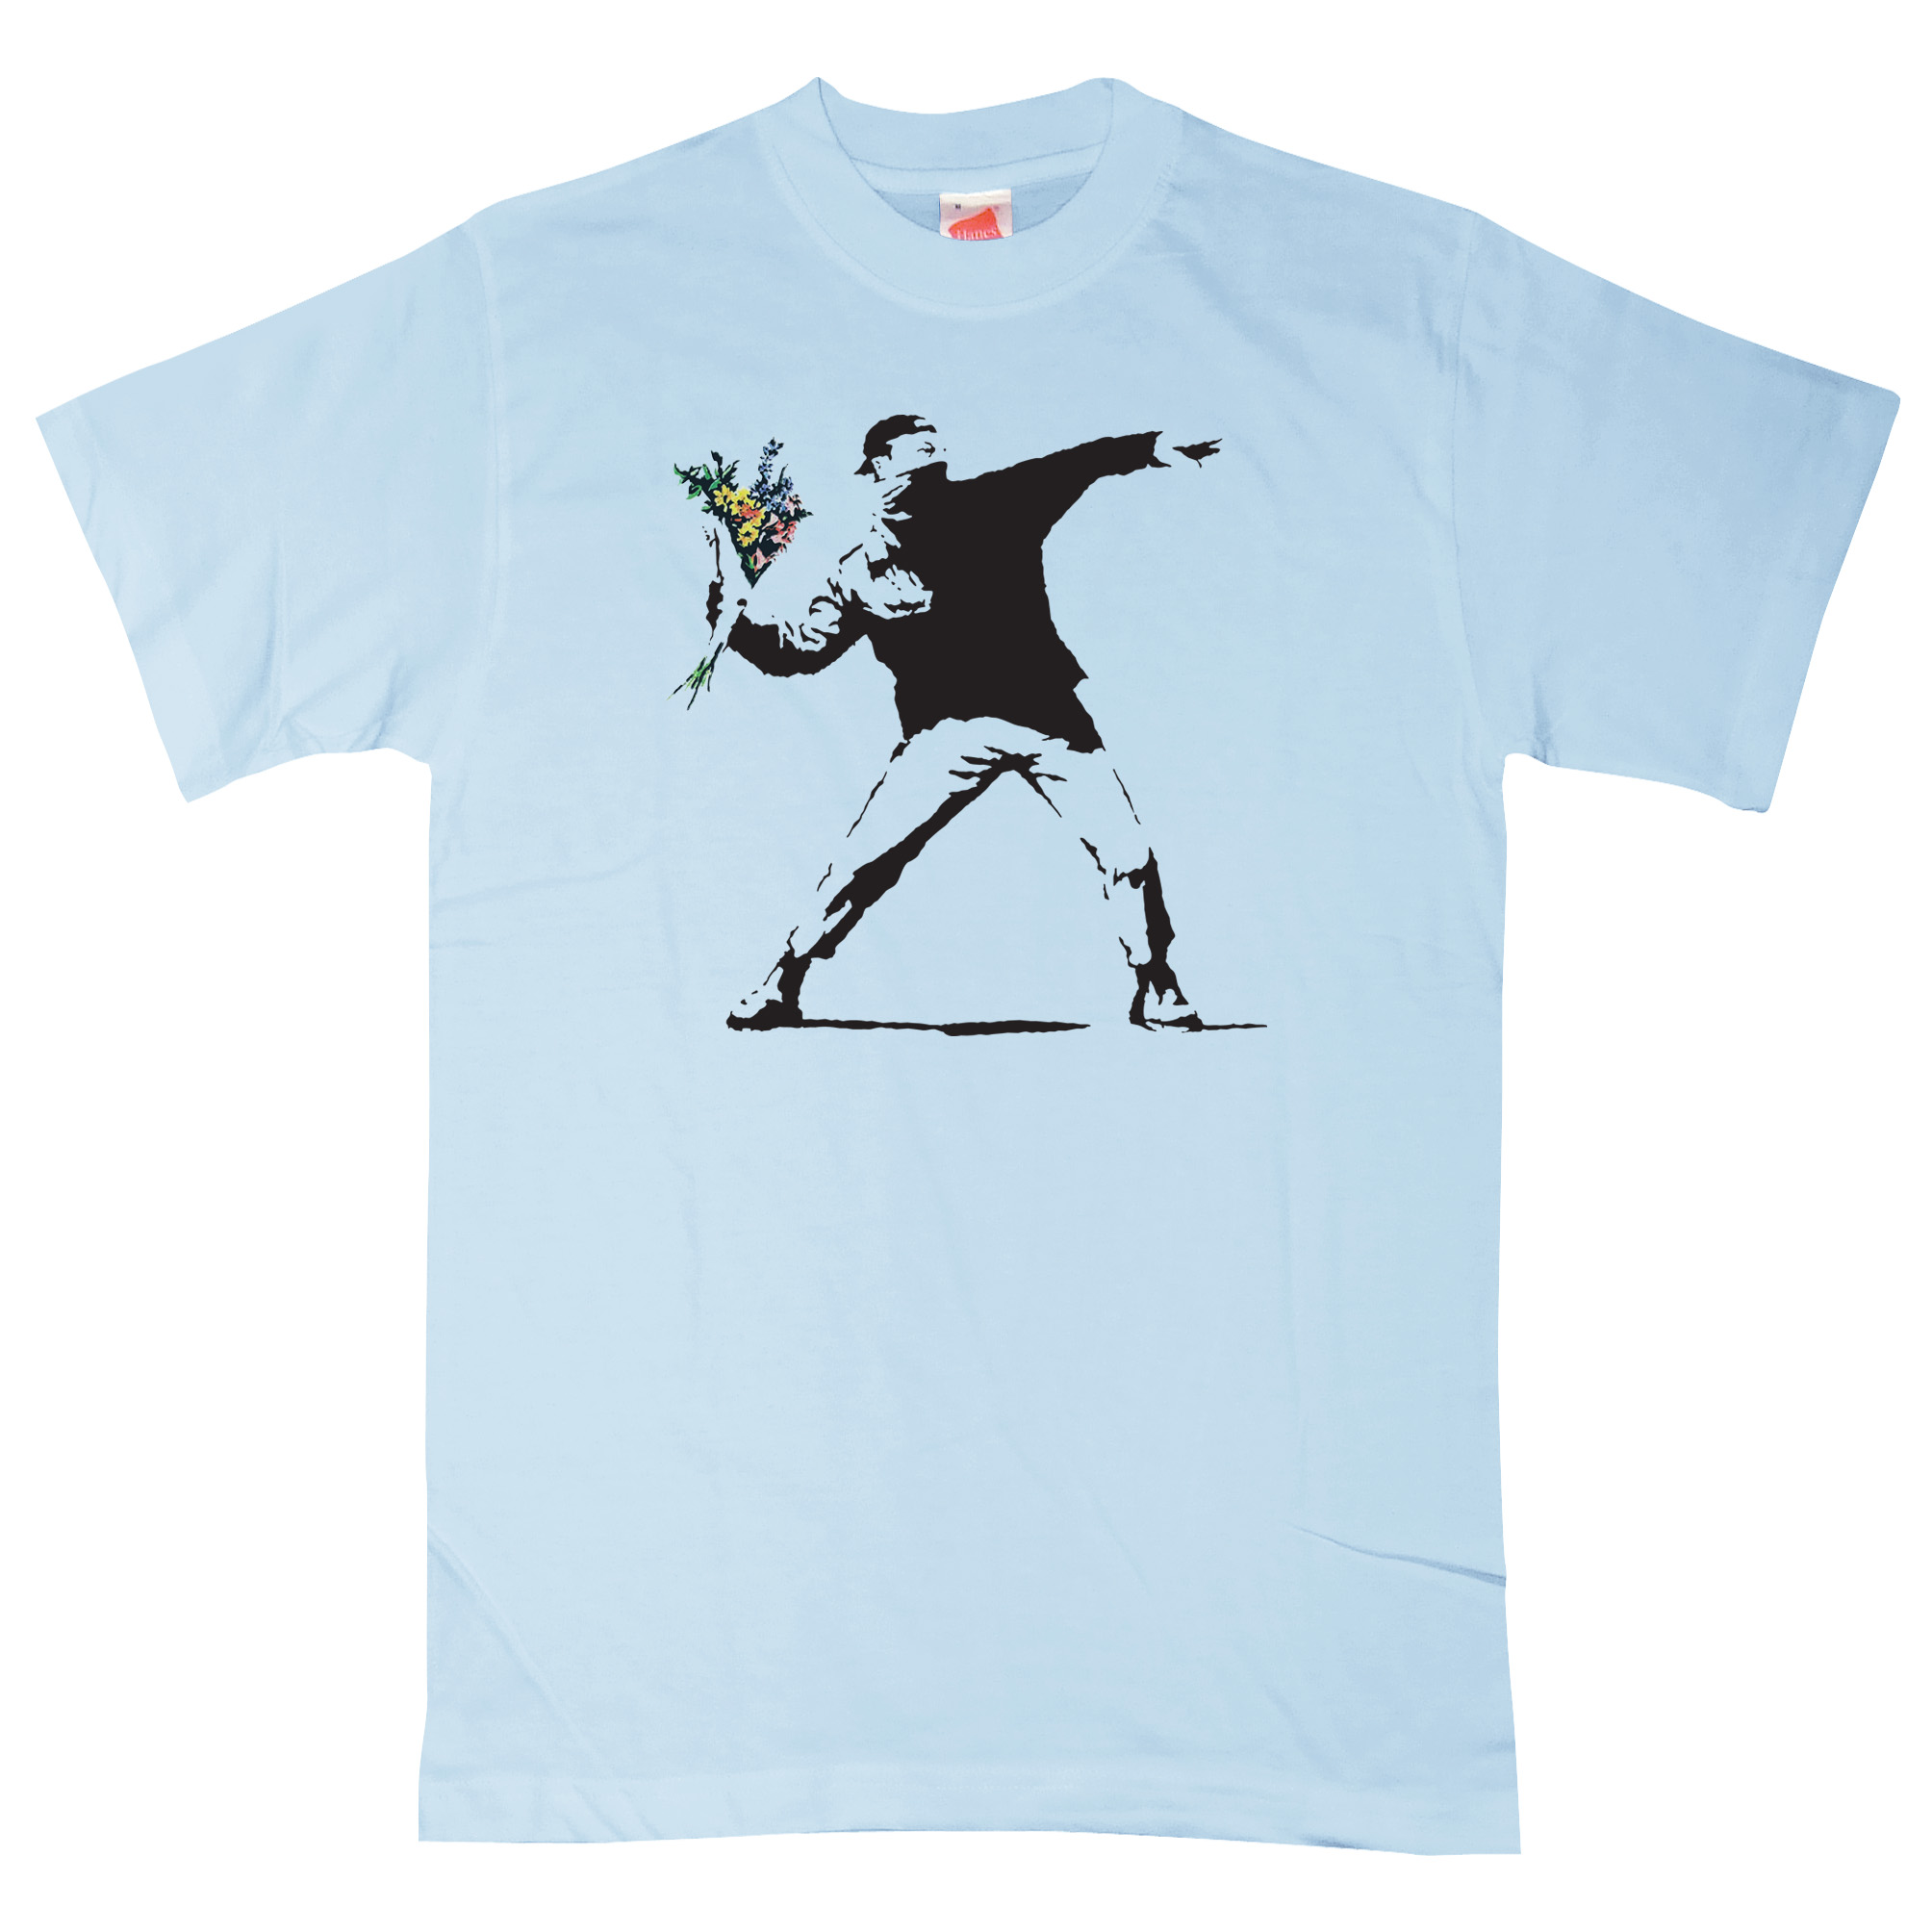 Mens banksy t shirt throwing flowers ebay How to sell shirts